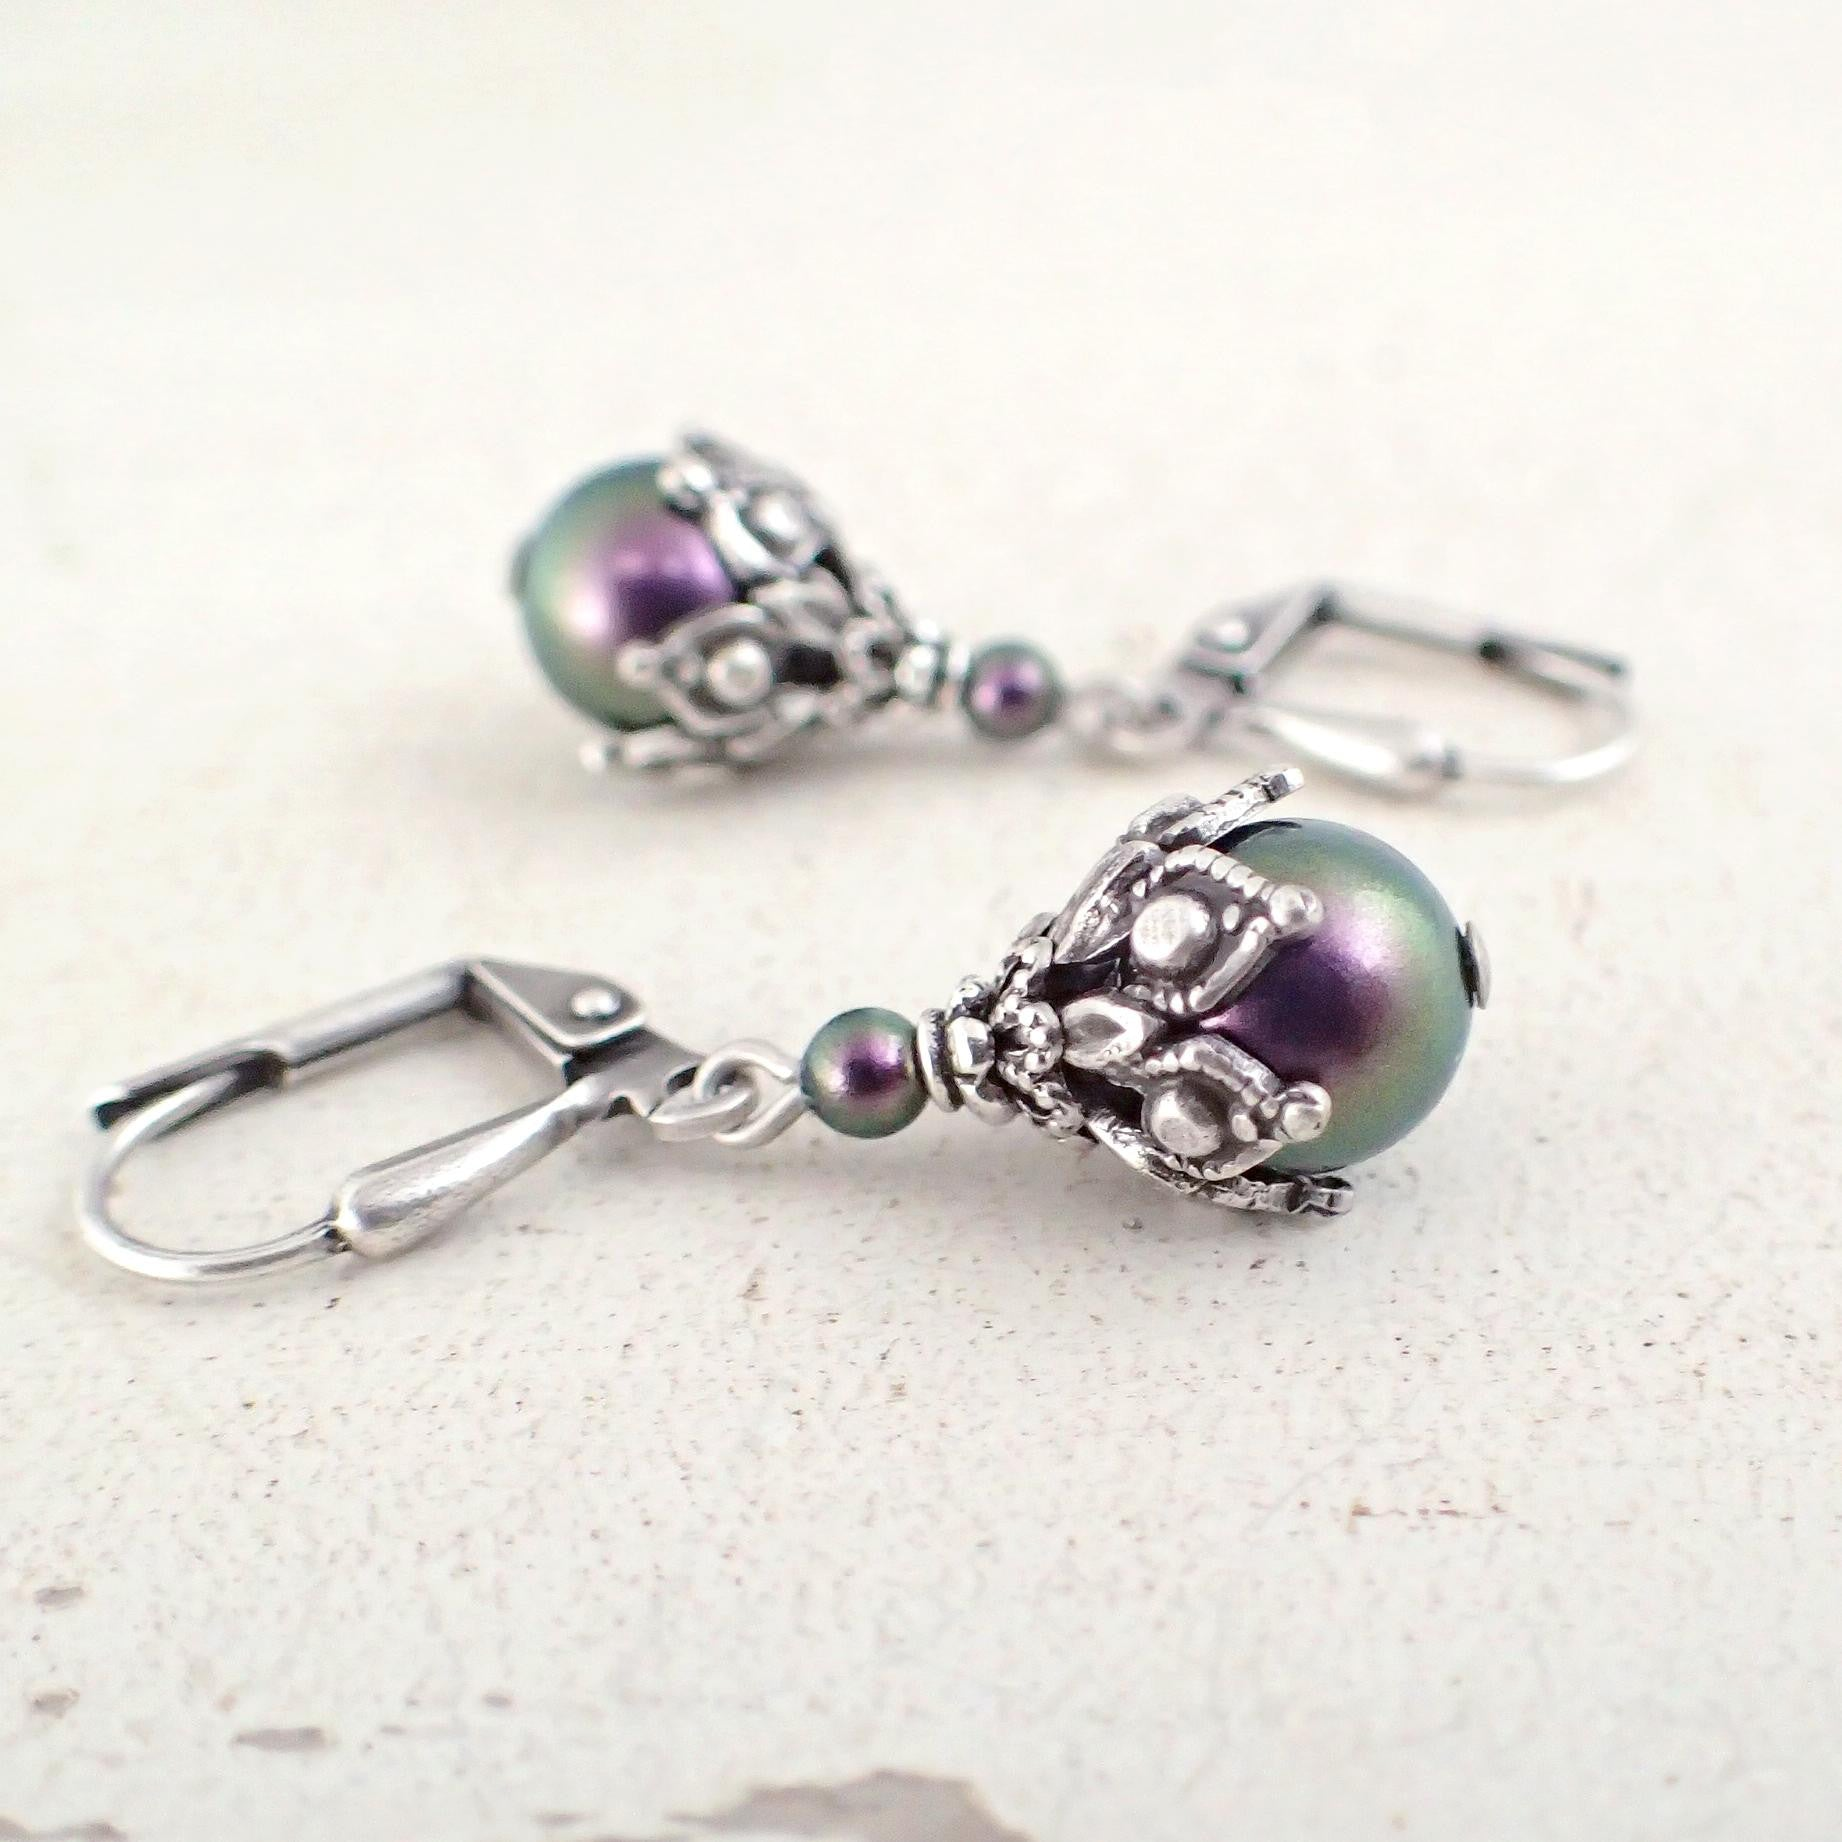 Iridescent Dark Purple Victorian Style Earrings